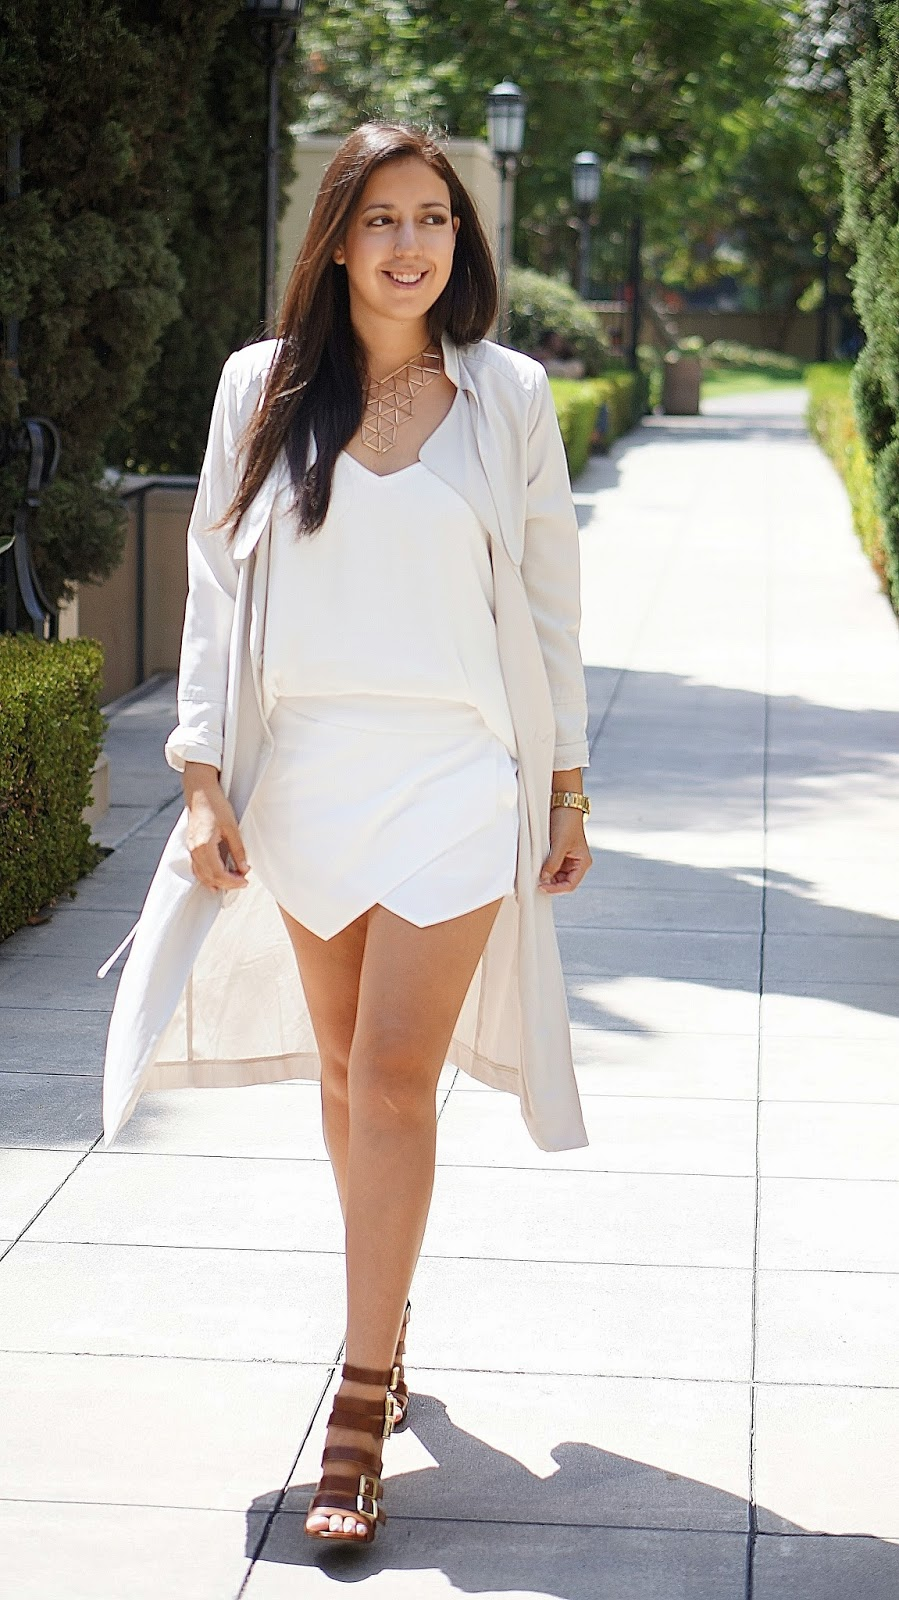 H&M Trench coat, White Skort, Mossimo Strappy Heels, Neutral fashion, Fashion blogger,Summet Fashion